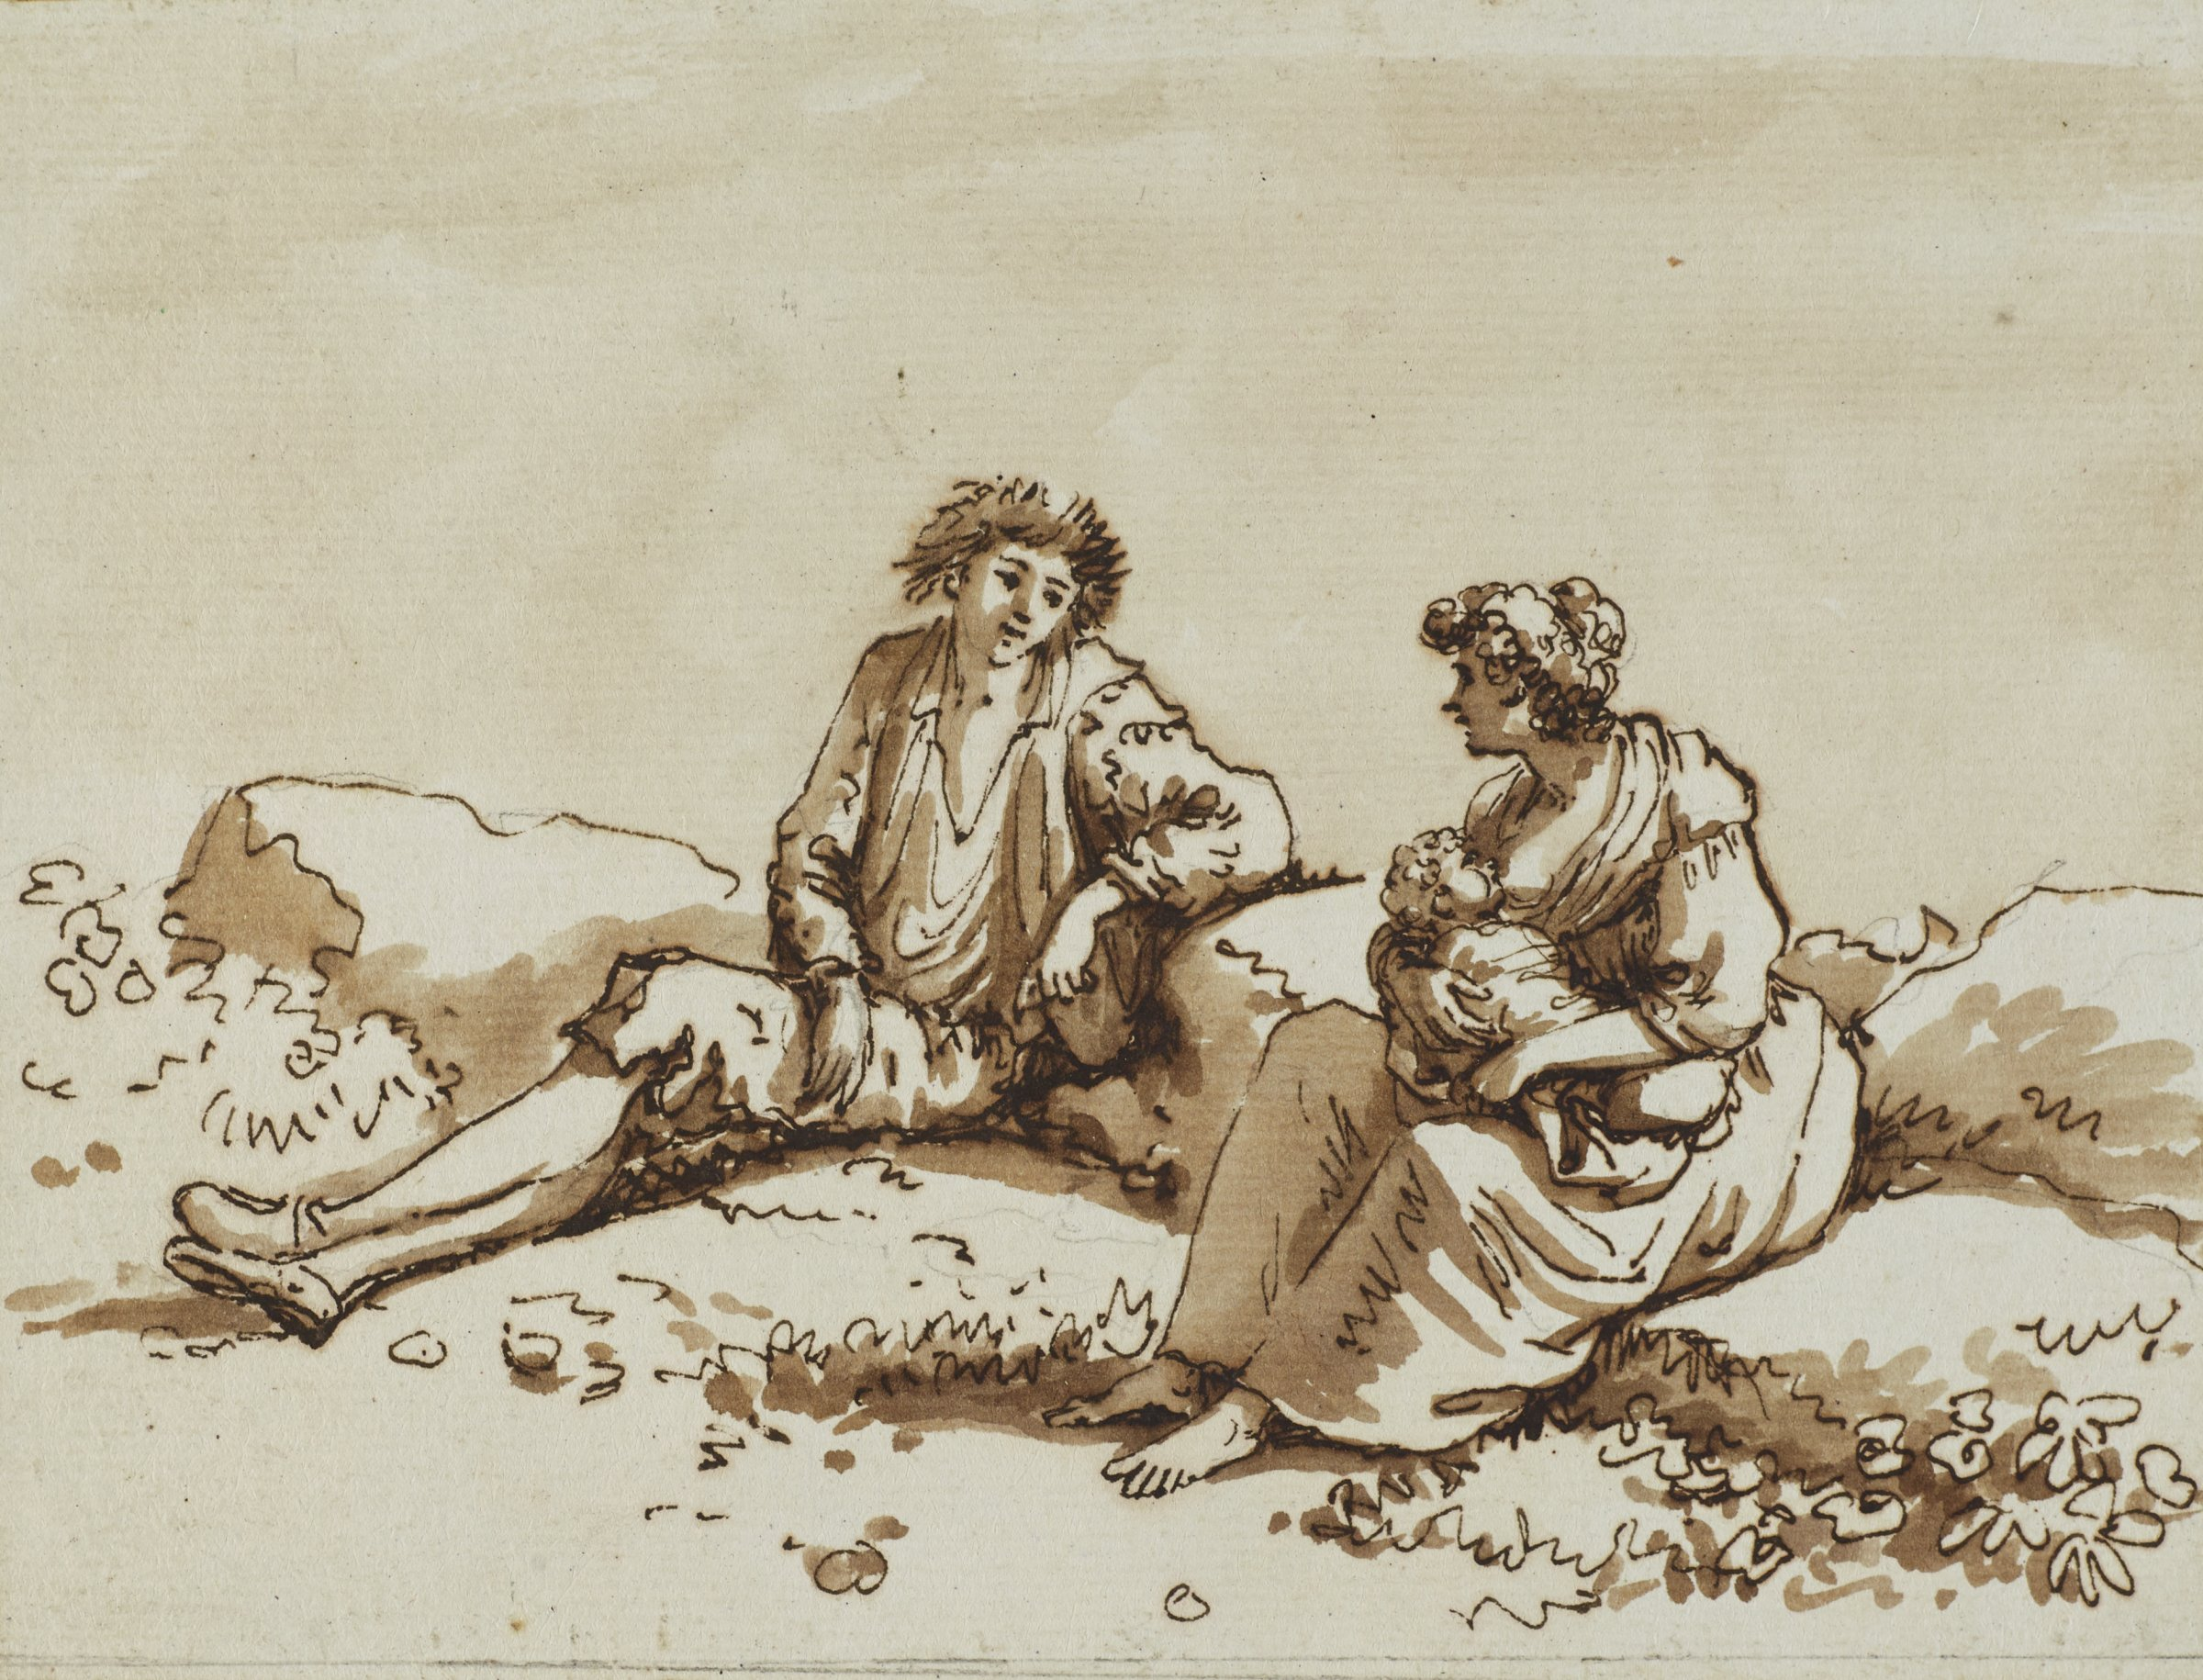 A couple and an infant are depicted. The man reclines on a rock as the woman nurses the infant. The couple is in conversation with one another.